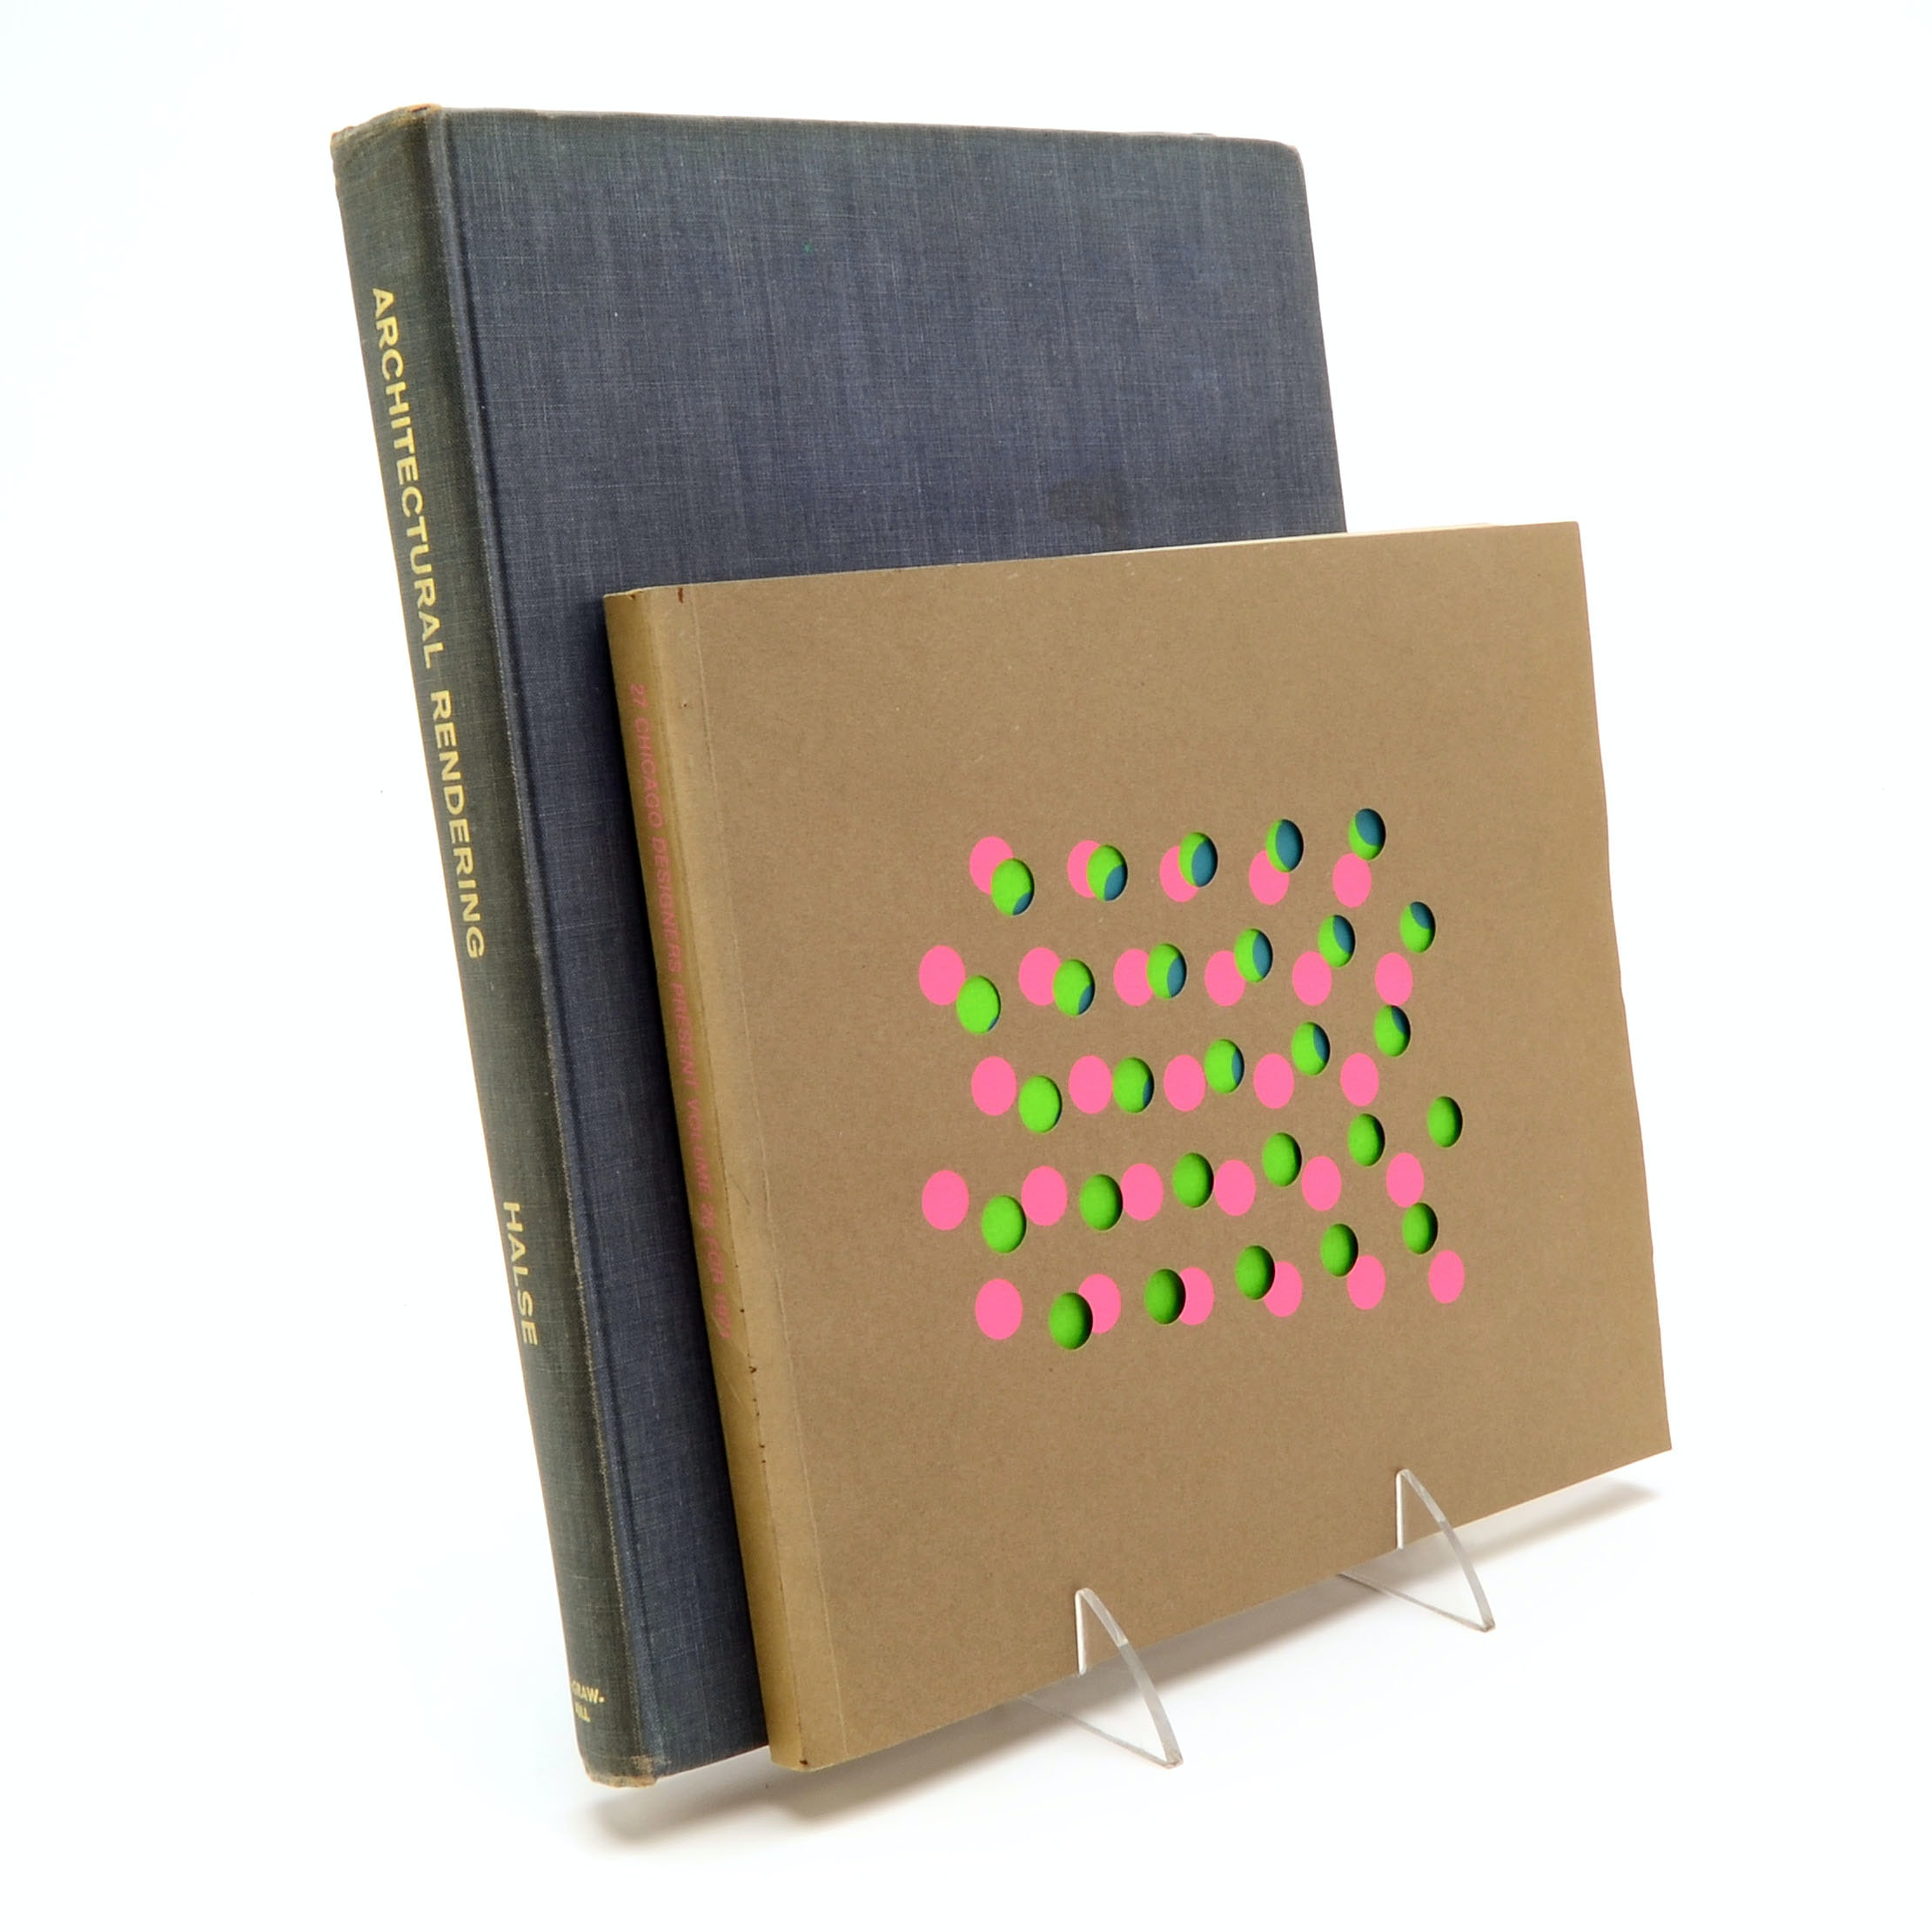 Vintage Graphic Design and Architectural Drawing Books